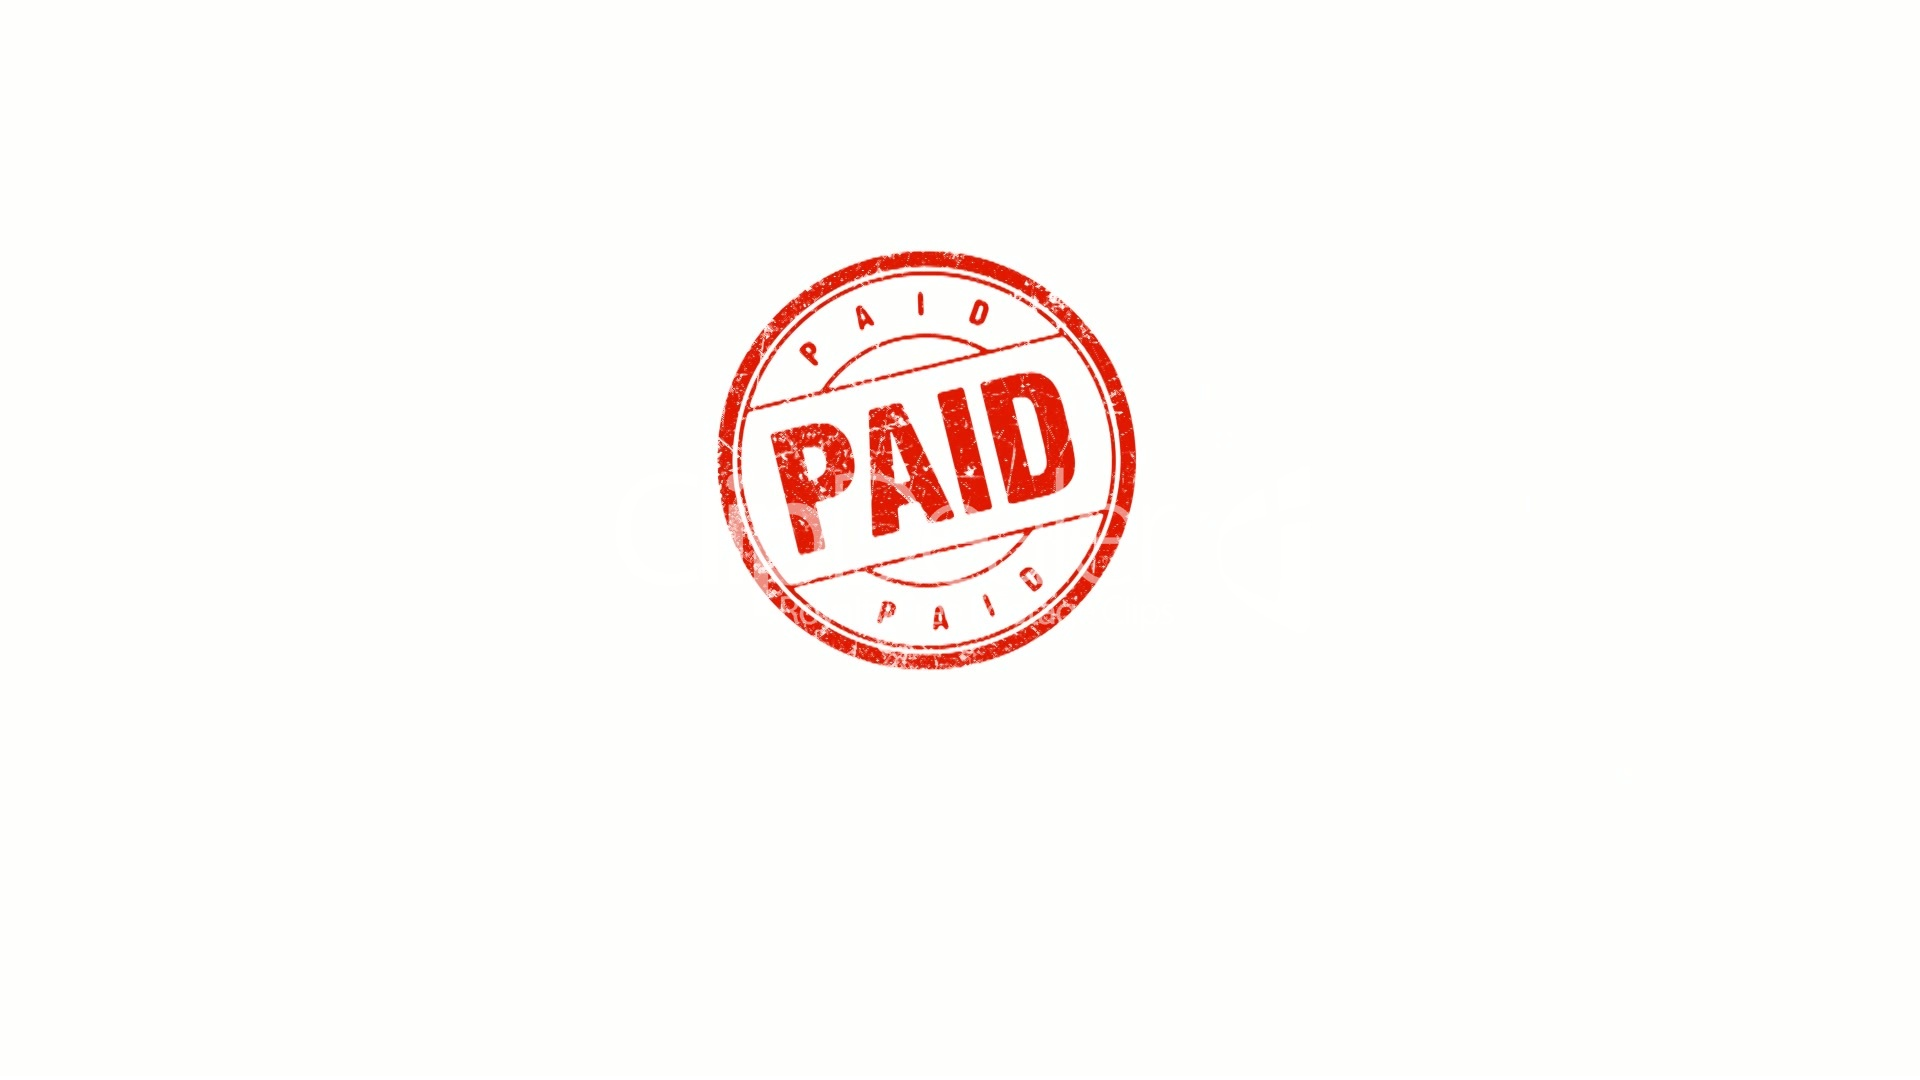 Free Paid Stamp Image, Download Free Clip Art, Free Clip Art.